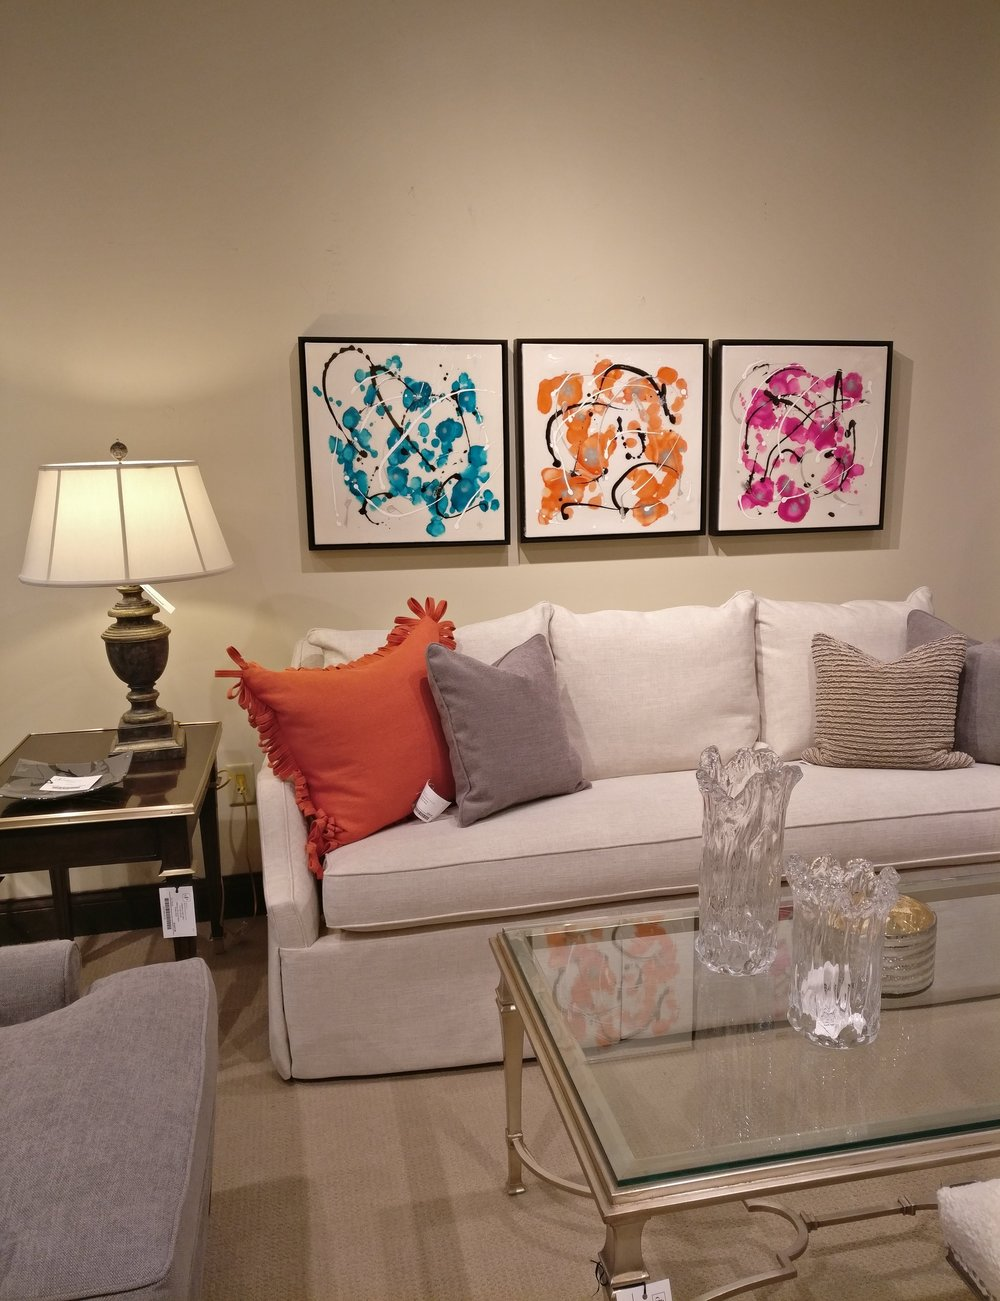 Design Professionals Showroom - Janella Fesenmaier, Color Bursts